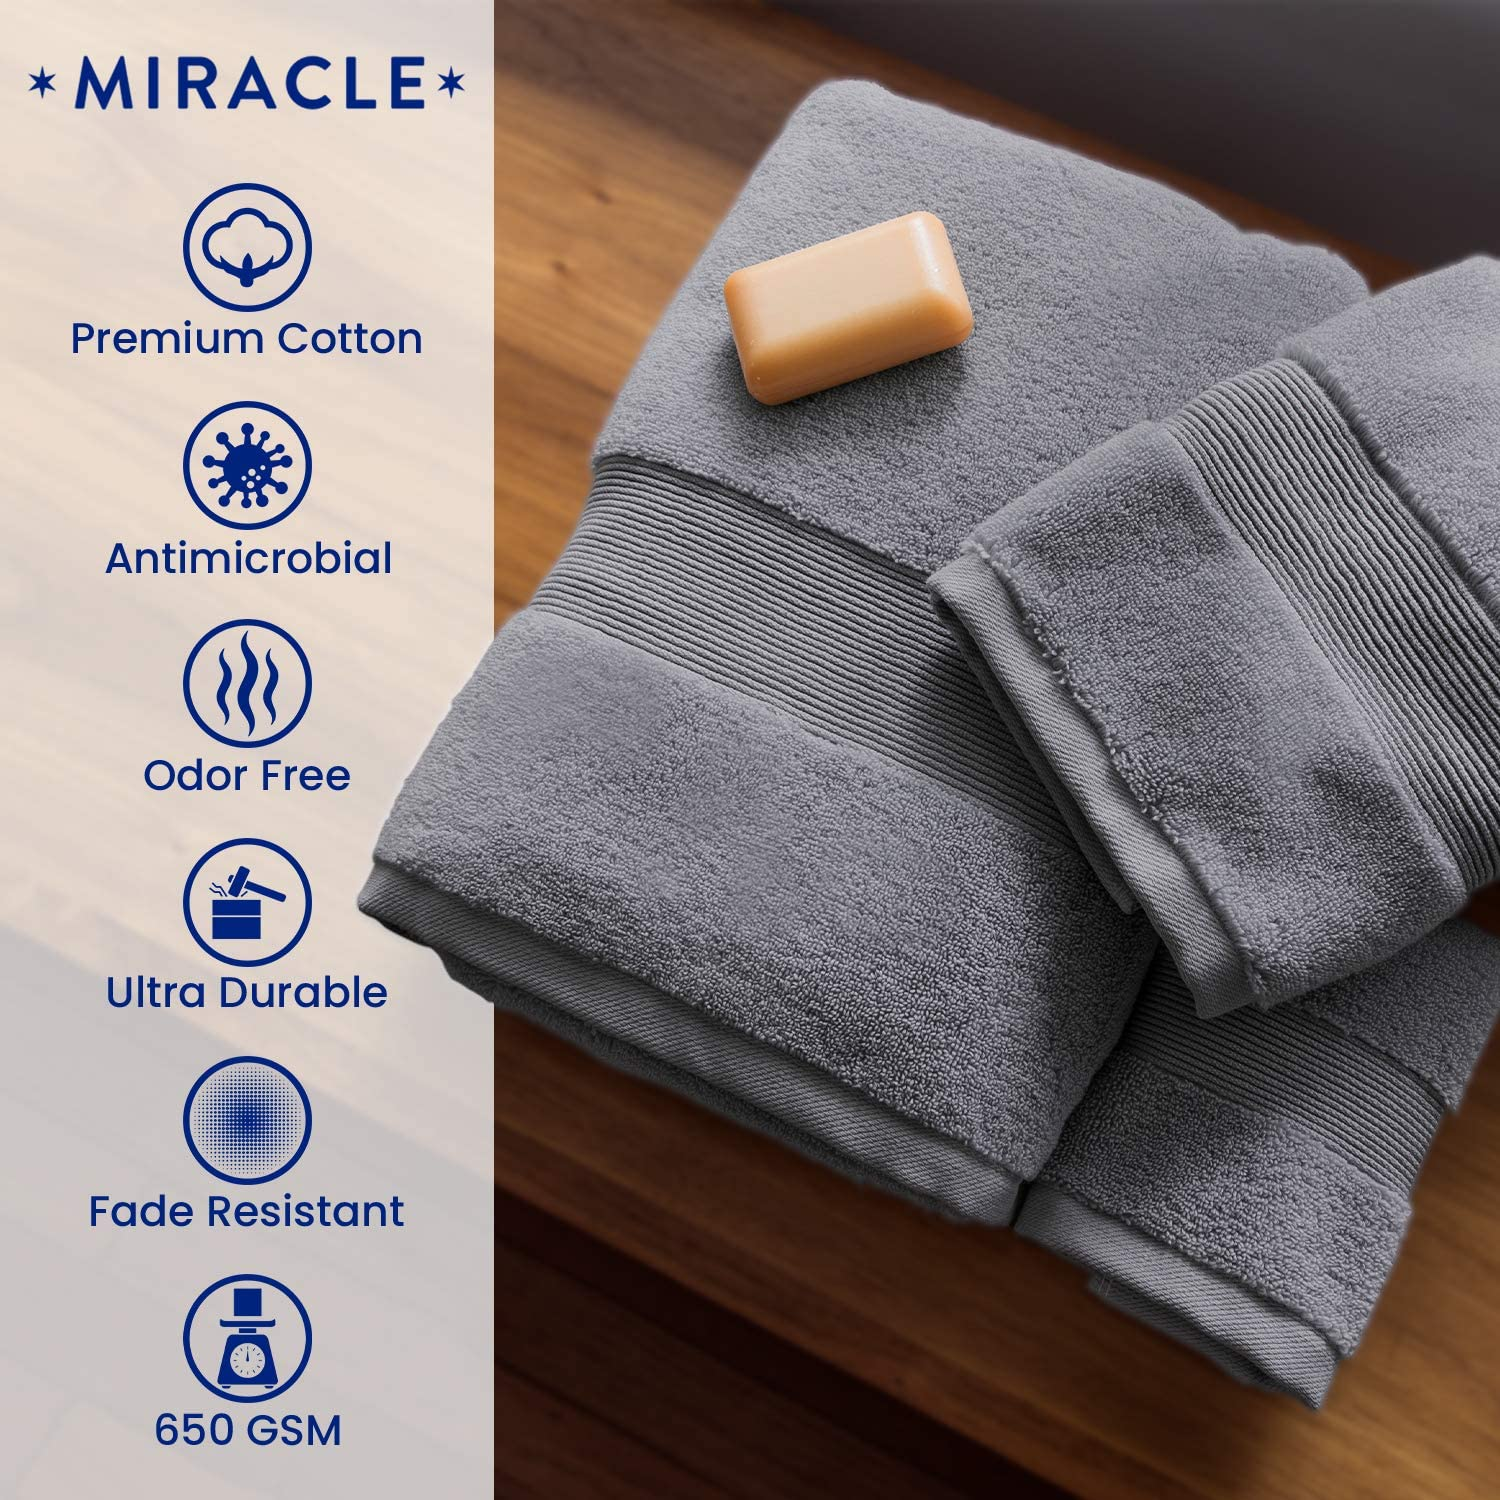 Miracle Made Bath Towel - Premium Bath Towel Infused with Natural Silver, Prevents 99.9% of Bacterial Growth - 100% Supima Cotto